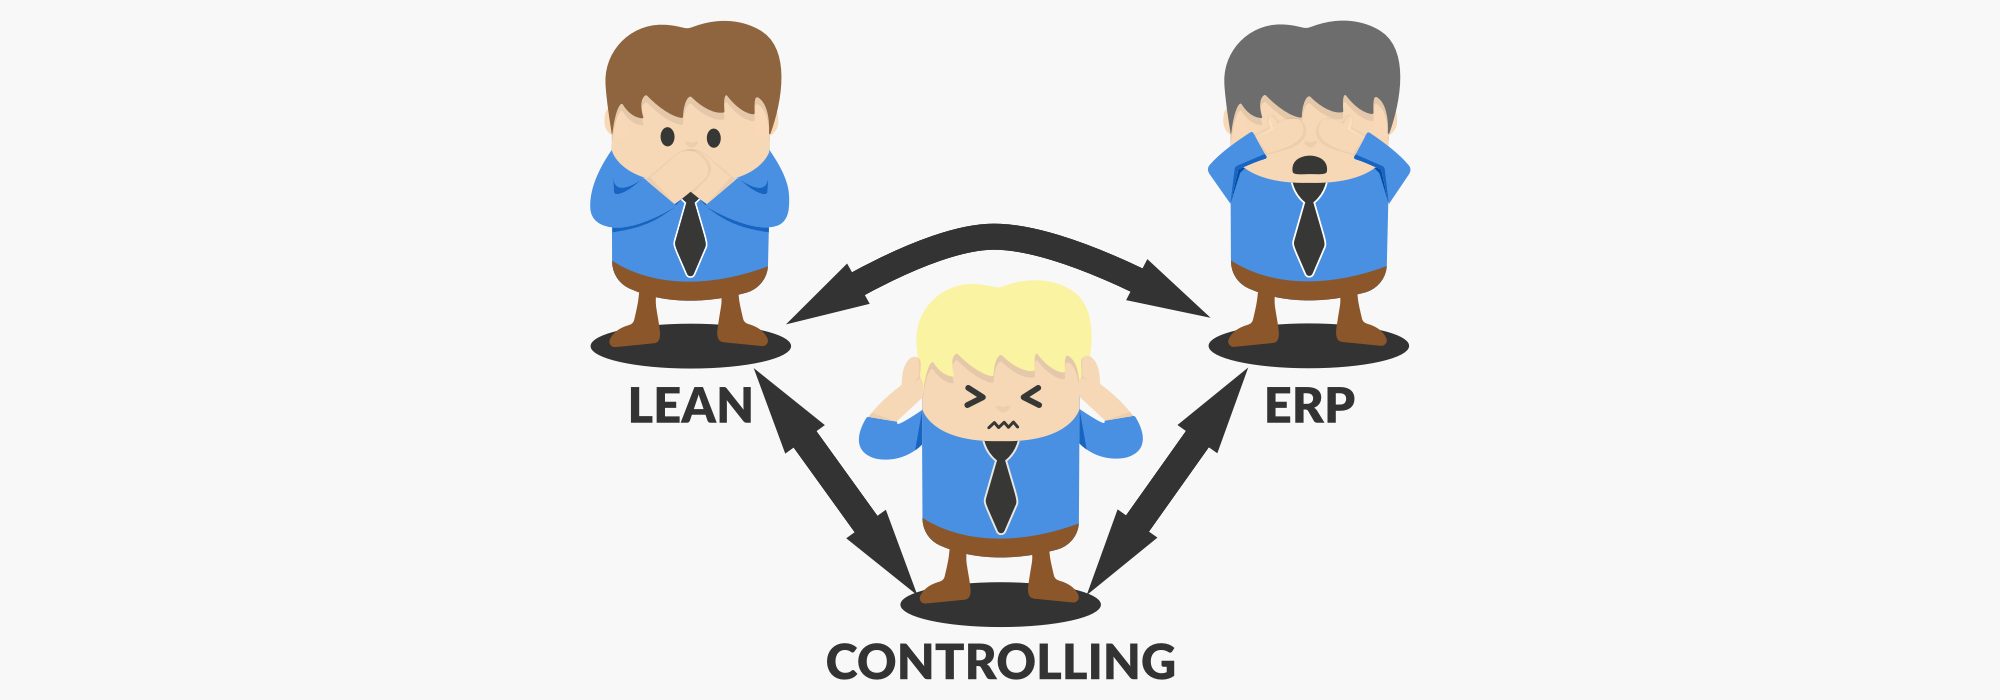 lean-erp-controlling.png